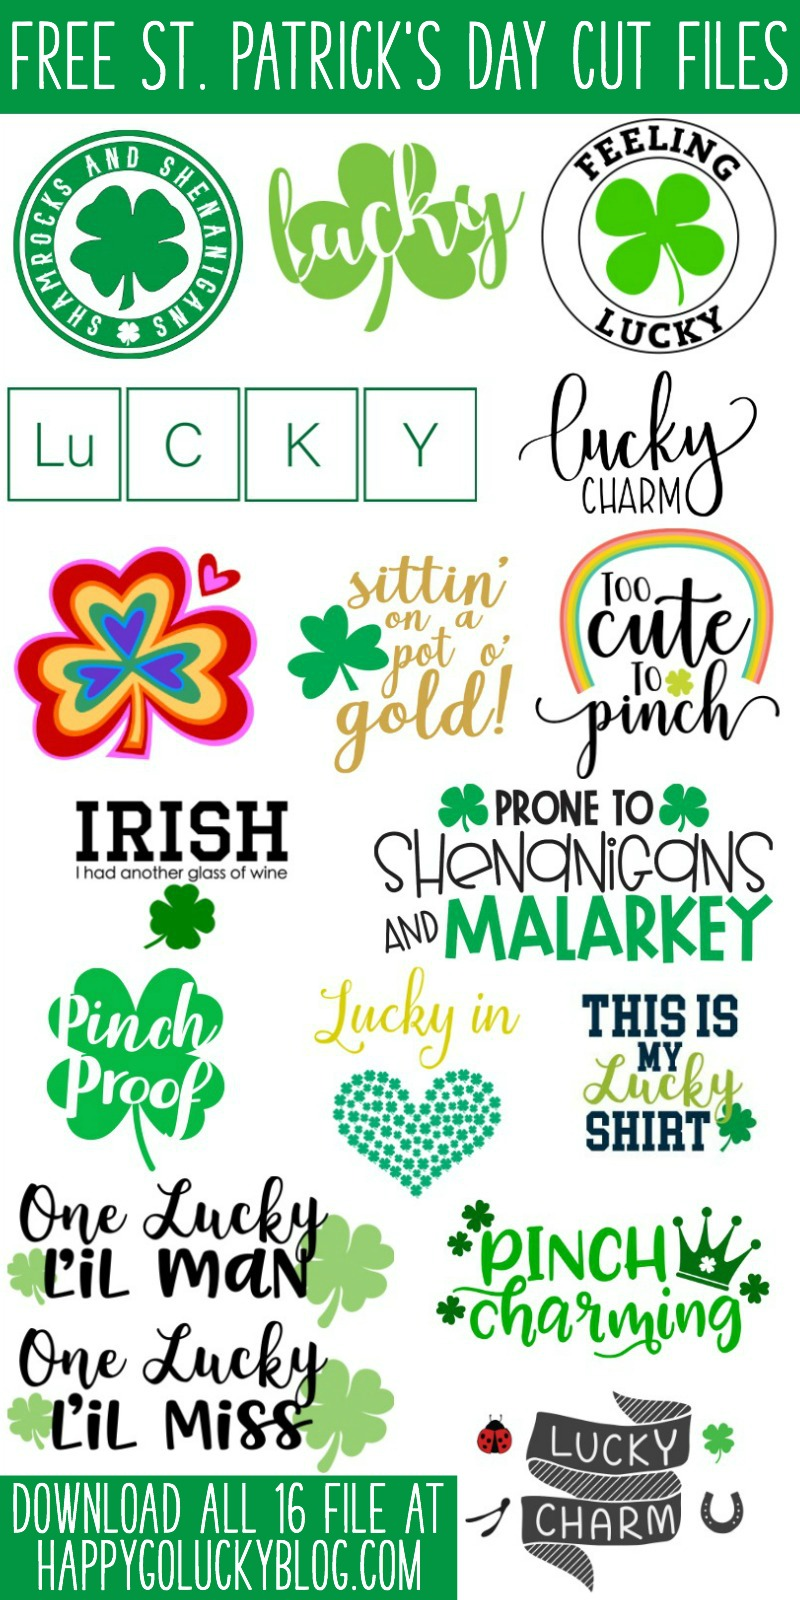 https://www.happygoluckyblog.com/wp-content/uploads/2019/02/Free-St.-Patricks-Day-Cut-Files.jpg